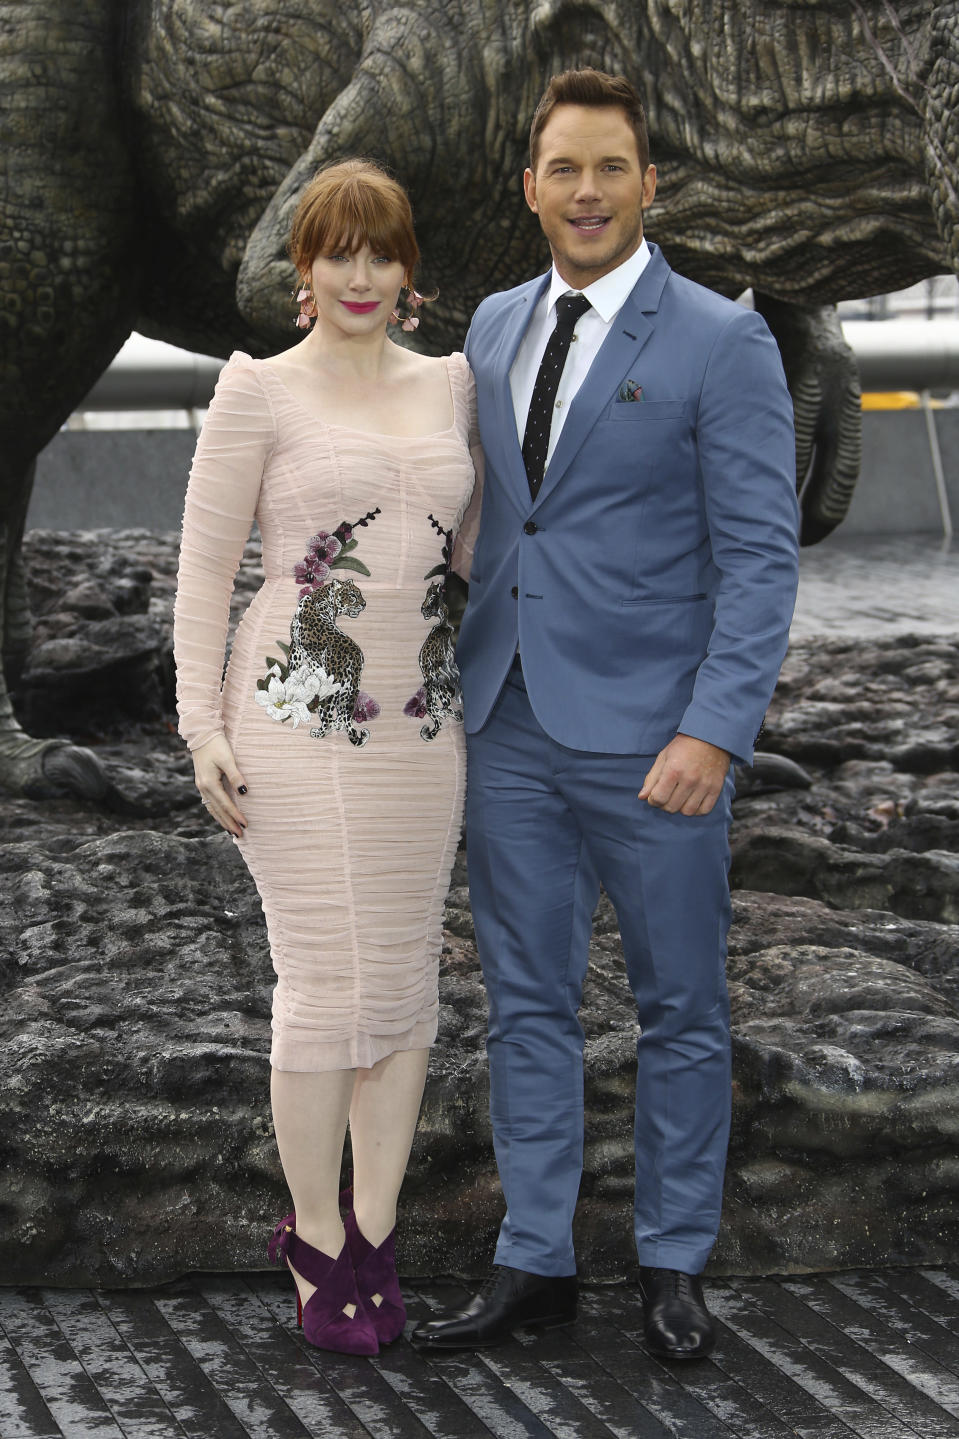 From left to right, actors Bryce Dallas Howard and Chris Pratt pose for photographers upon arrival at a photo call of Jurassic World: Fallen Kingdom, by Tower Bridge in central London, Thursday, May 24, 2018. (Photo by Joel C Ryan/Invision/AP)